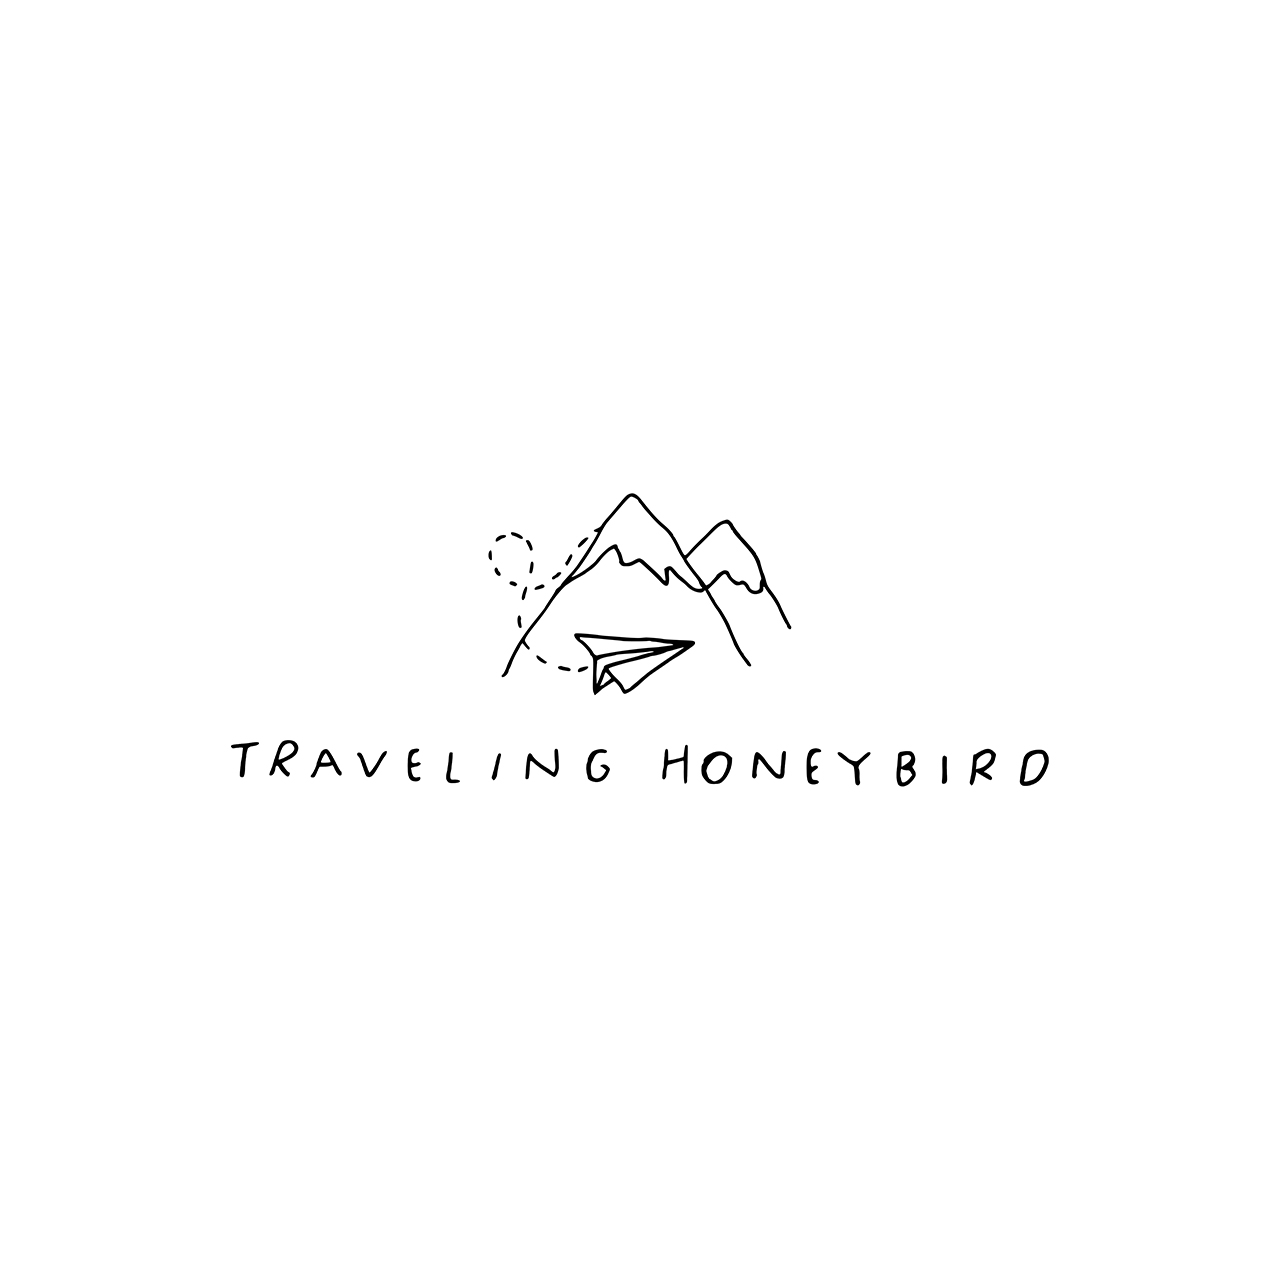 Traveling Honeybird